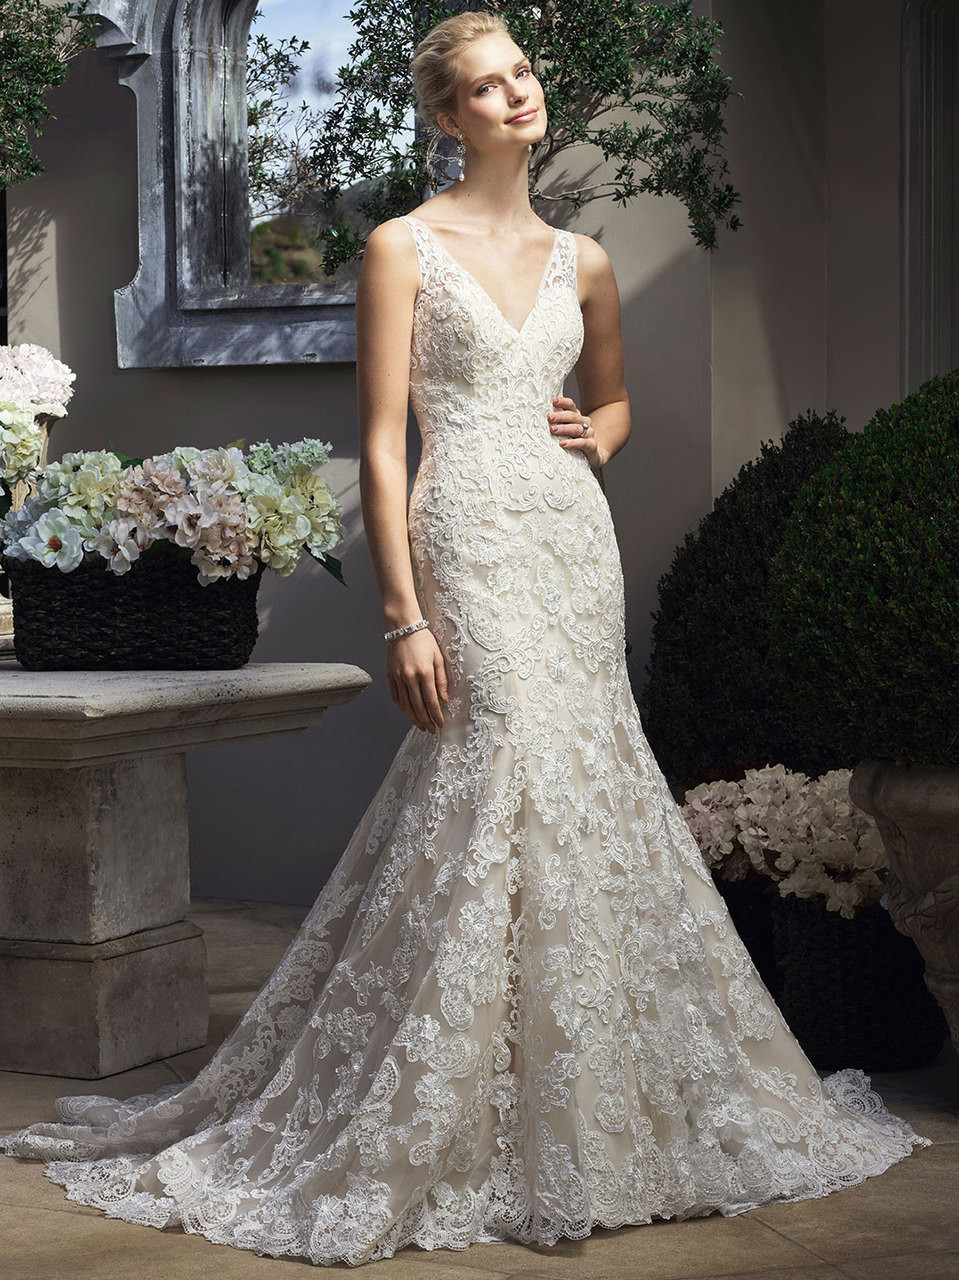 f020baae879 Illusion Lace Tank Wedding Dress With Tulle Skirt - Gomes Weine AG